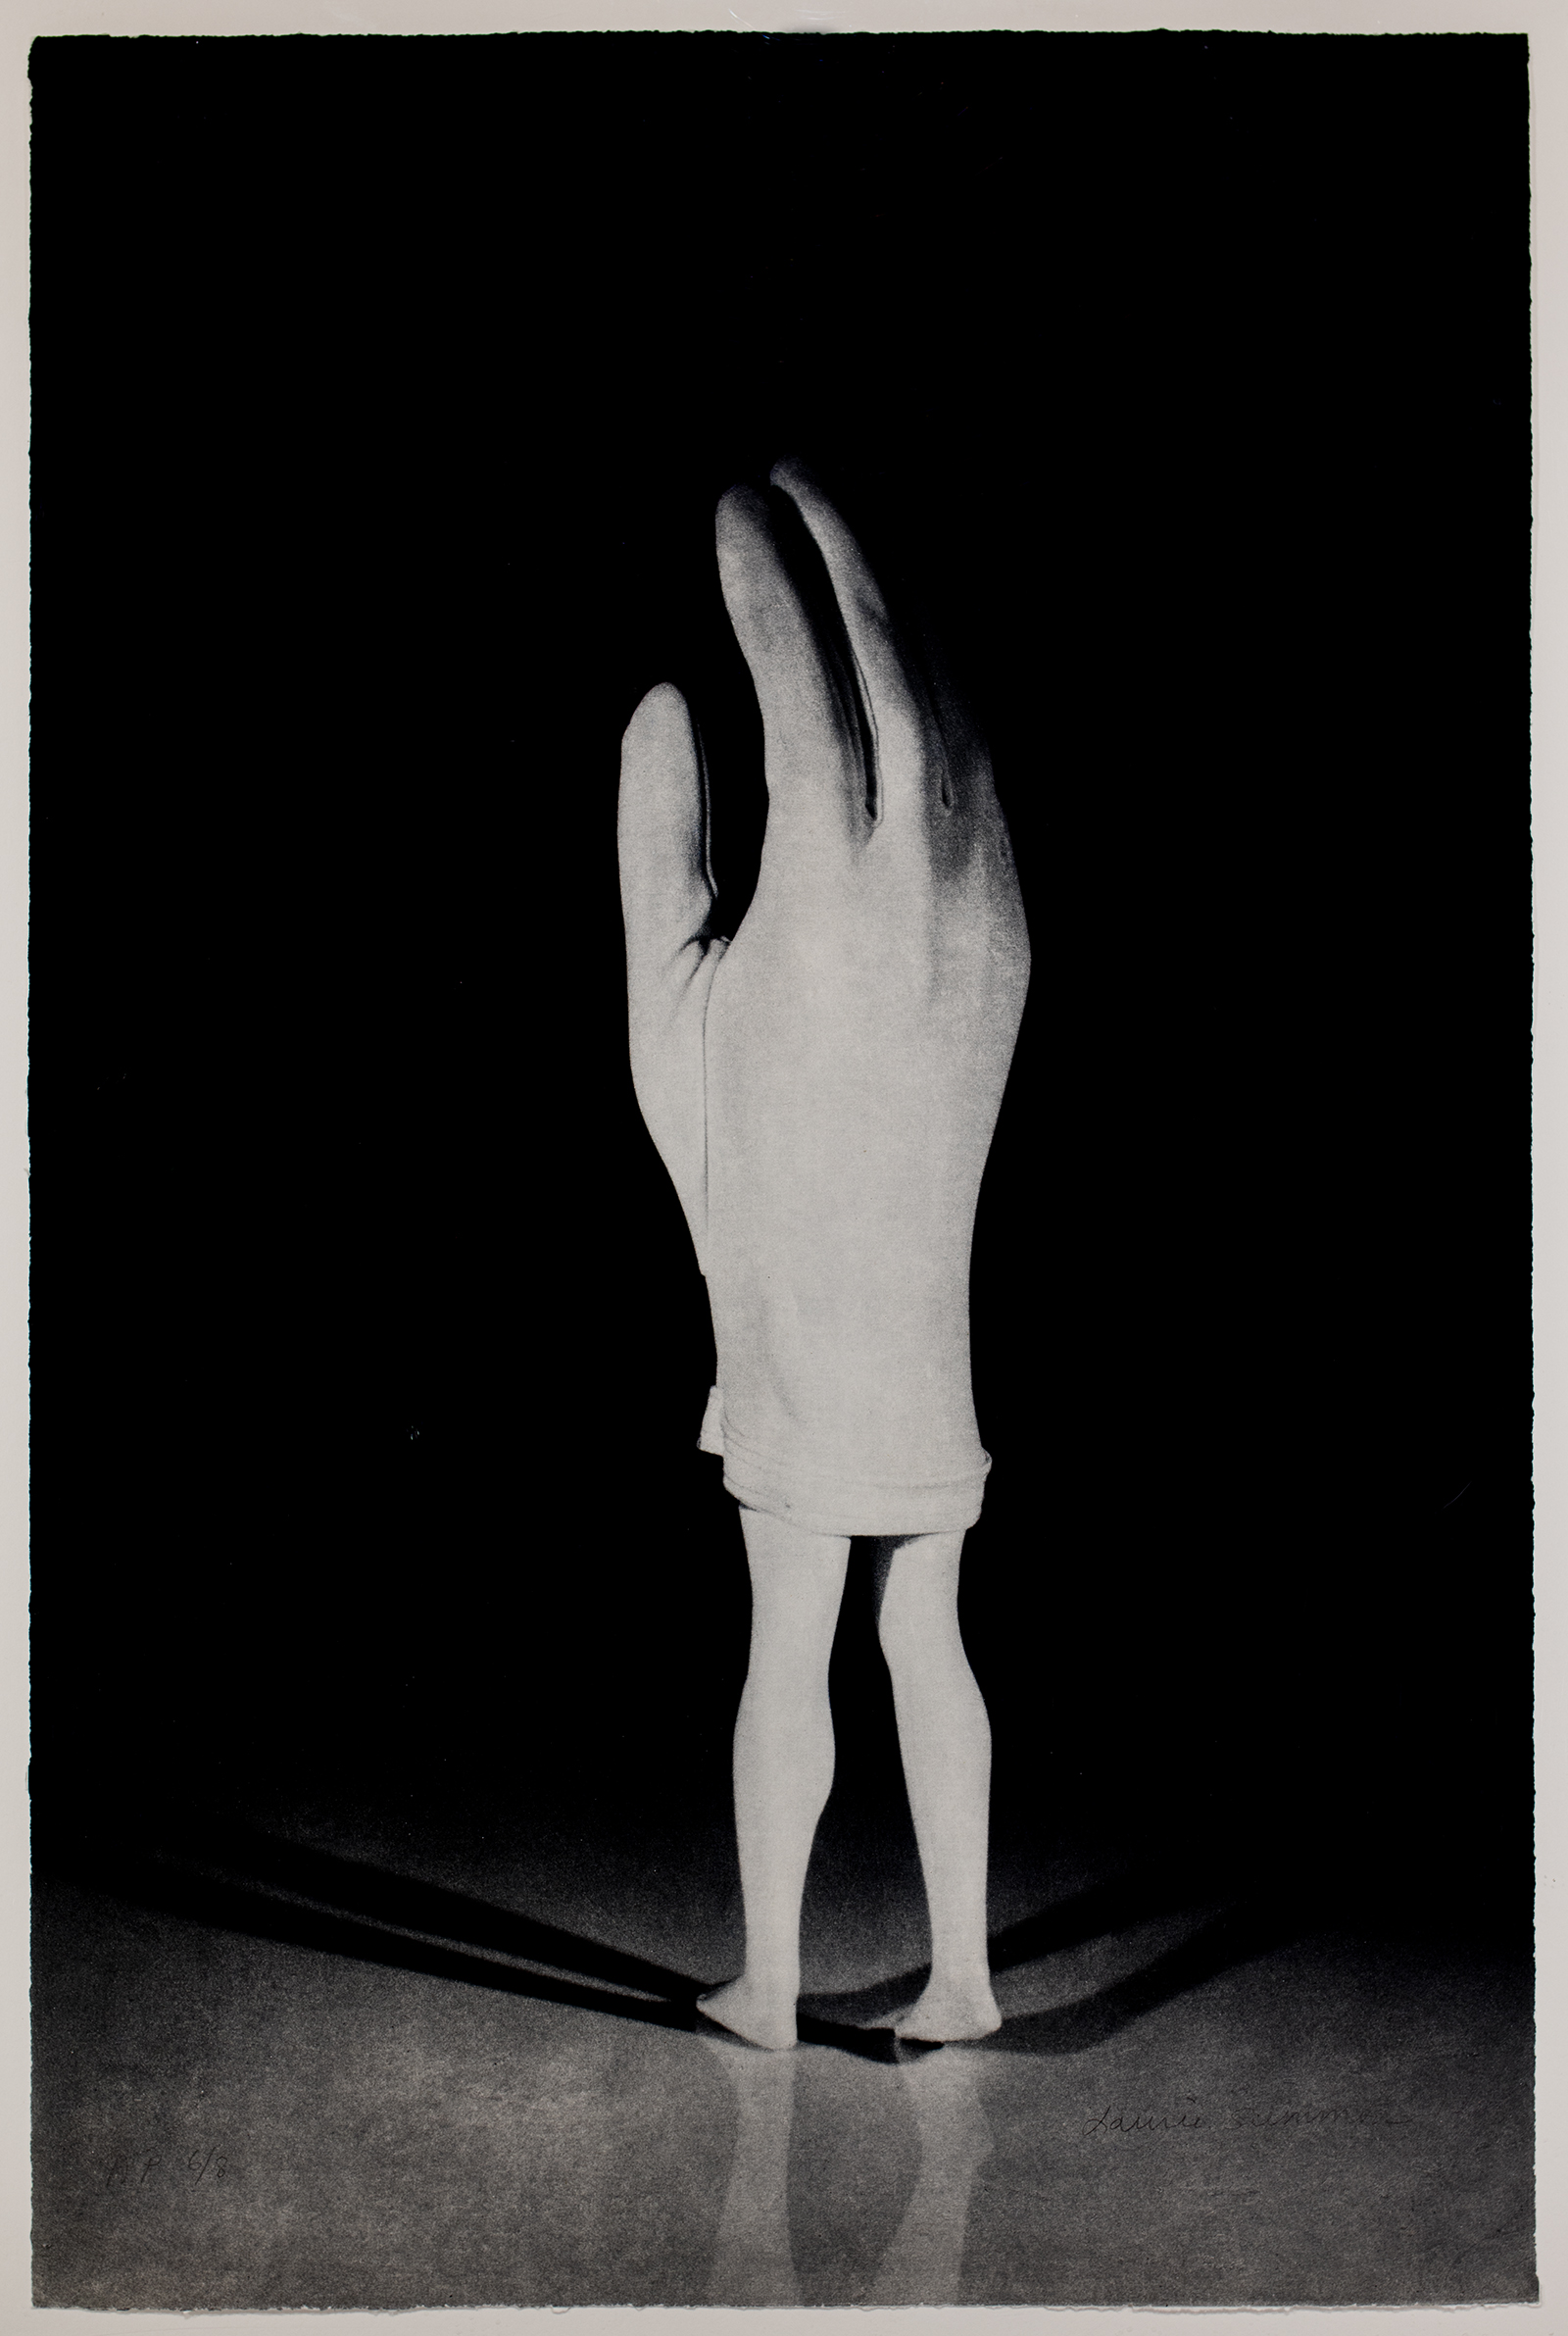 Laurie Simmons, Walking Glove, 1996